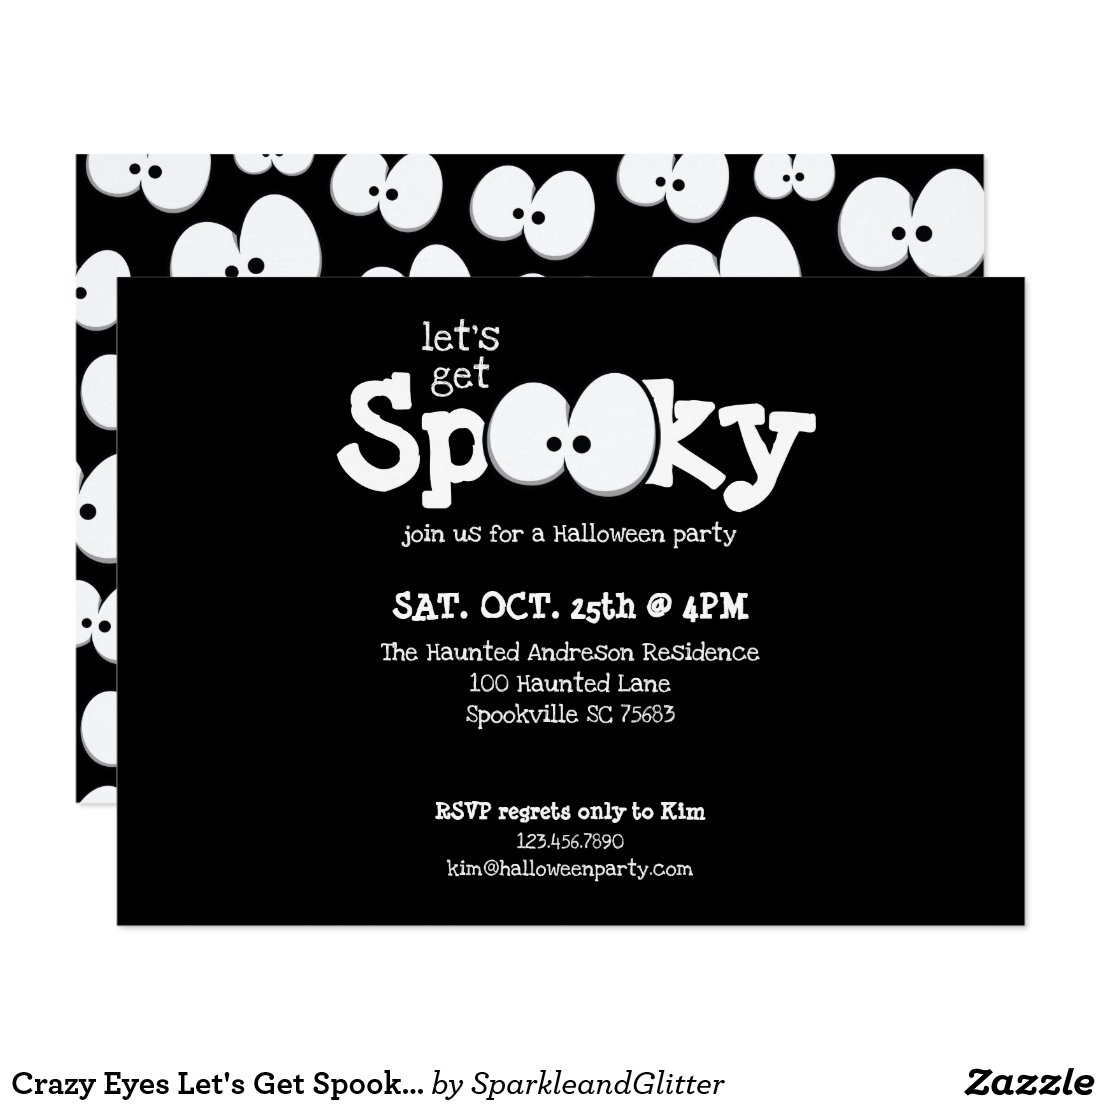 Crazy Eyes Let's Get Spooky Halloween Party Invitation